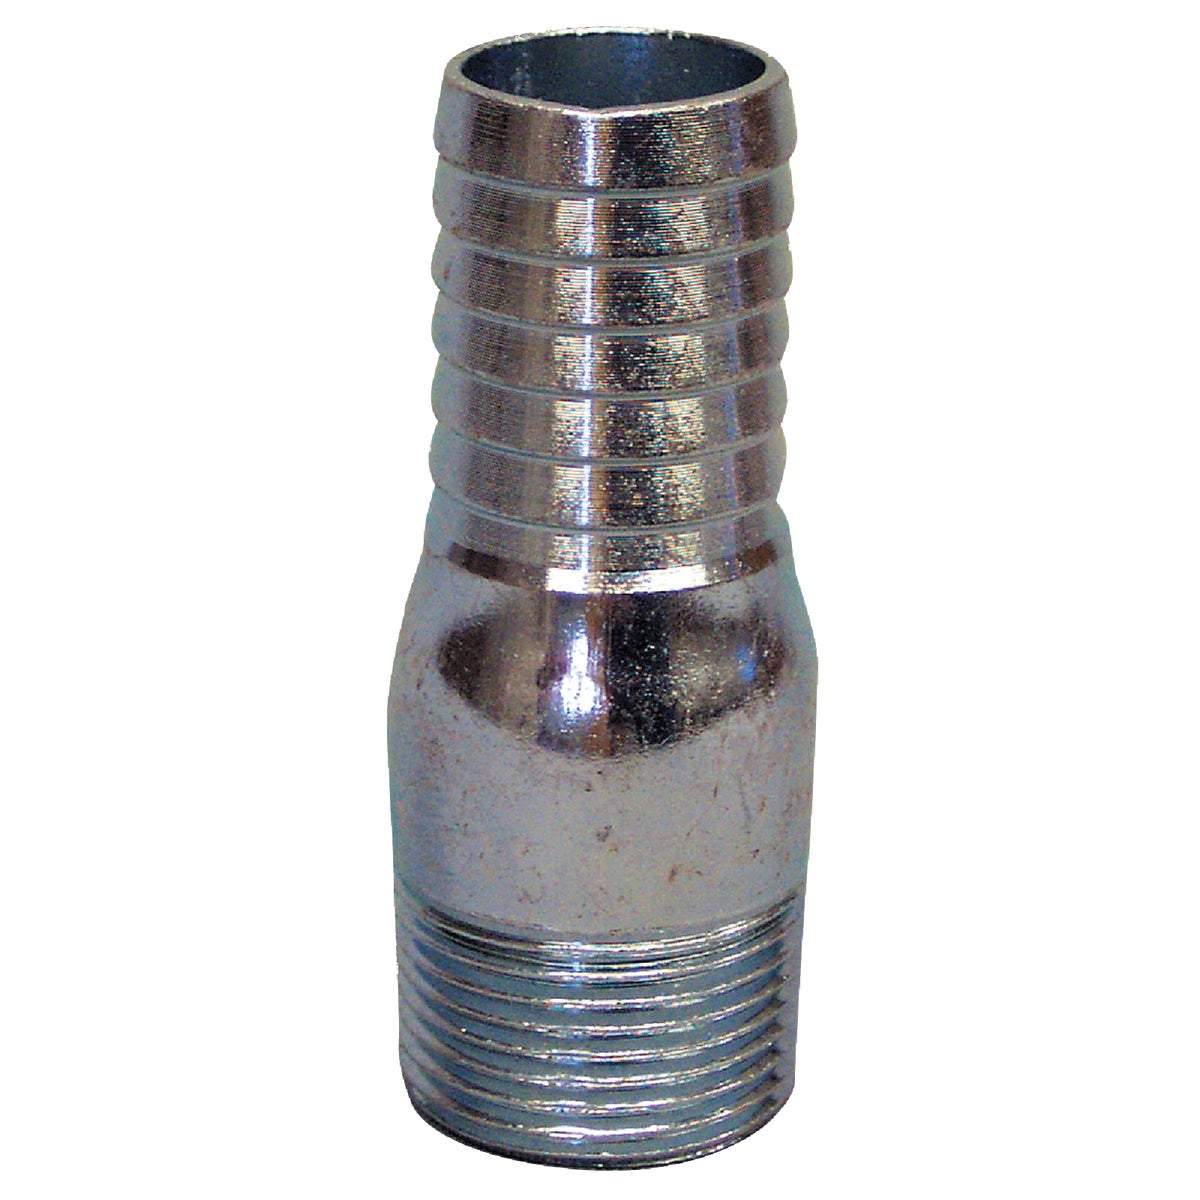 "1/2"" THREADED ADAPTER - SMA50 by Merrill Mfg"